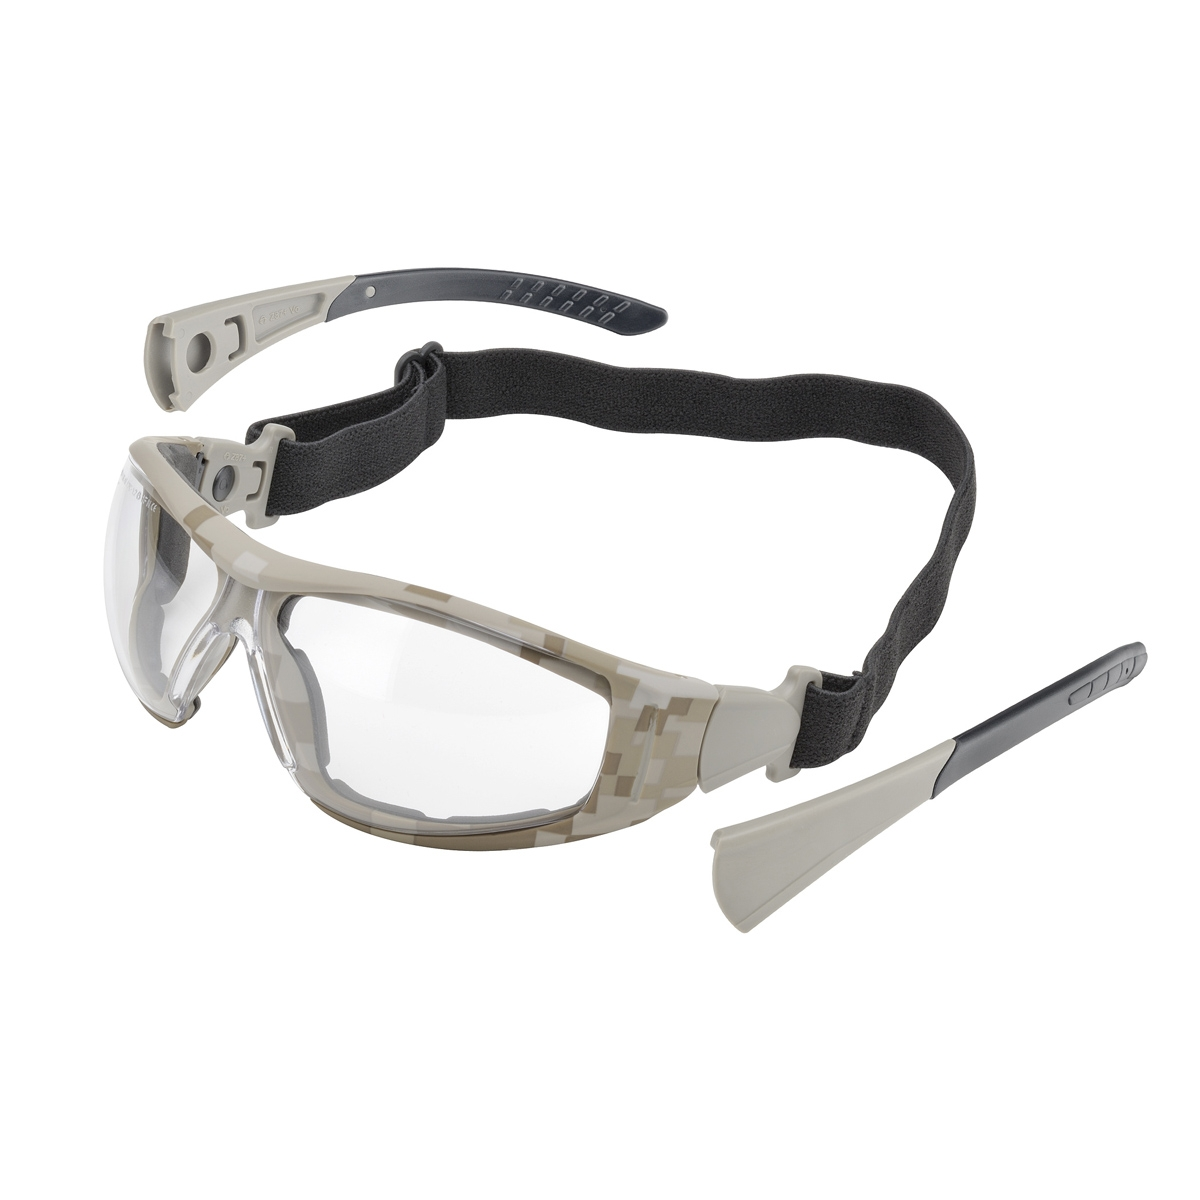 elvex go specs ii safety glassesgoggles camo frame clear anti fog lens